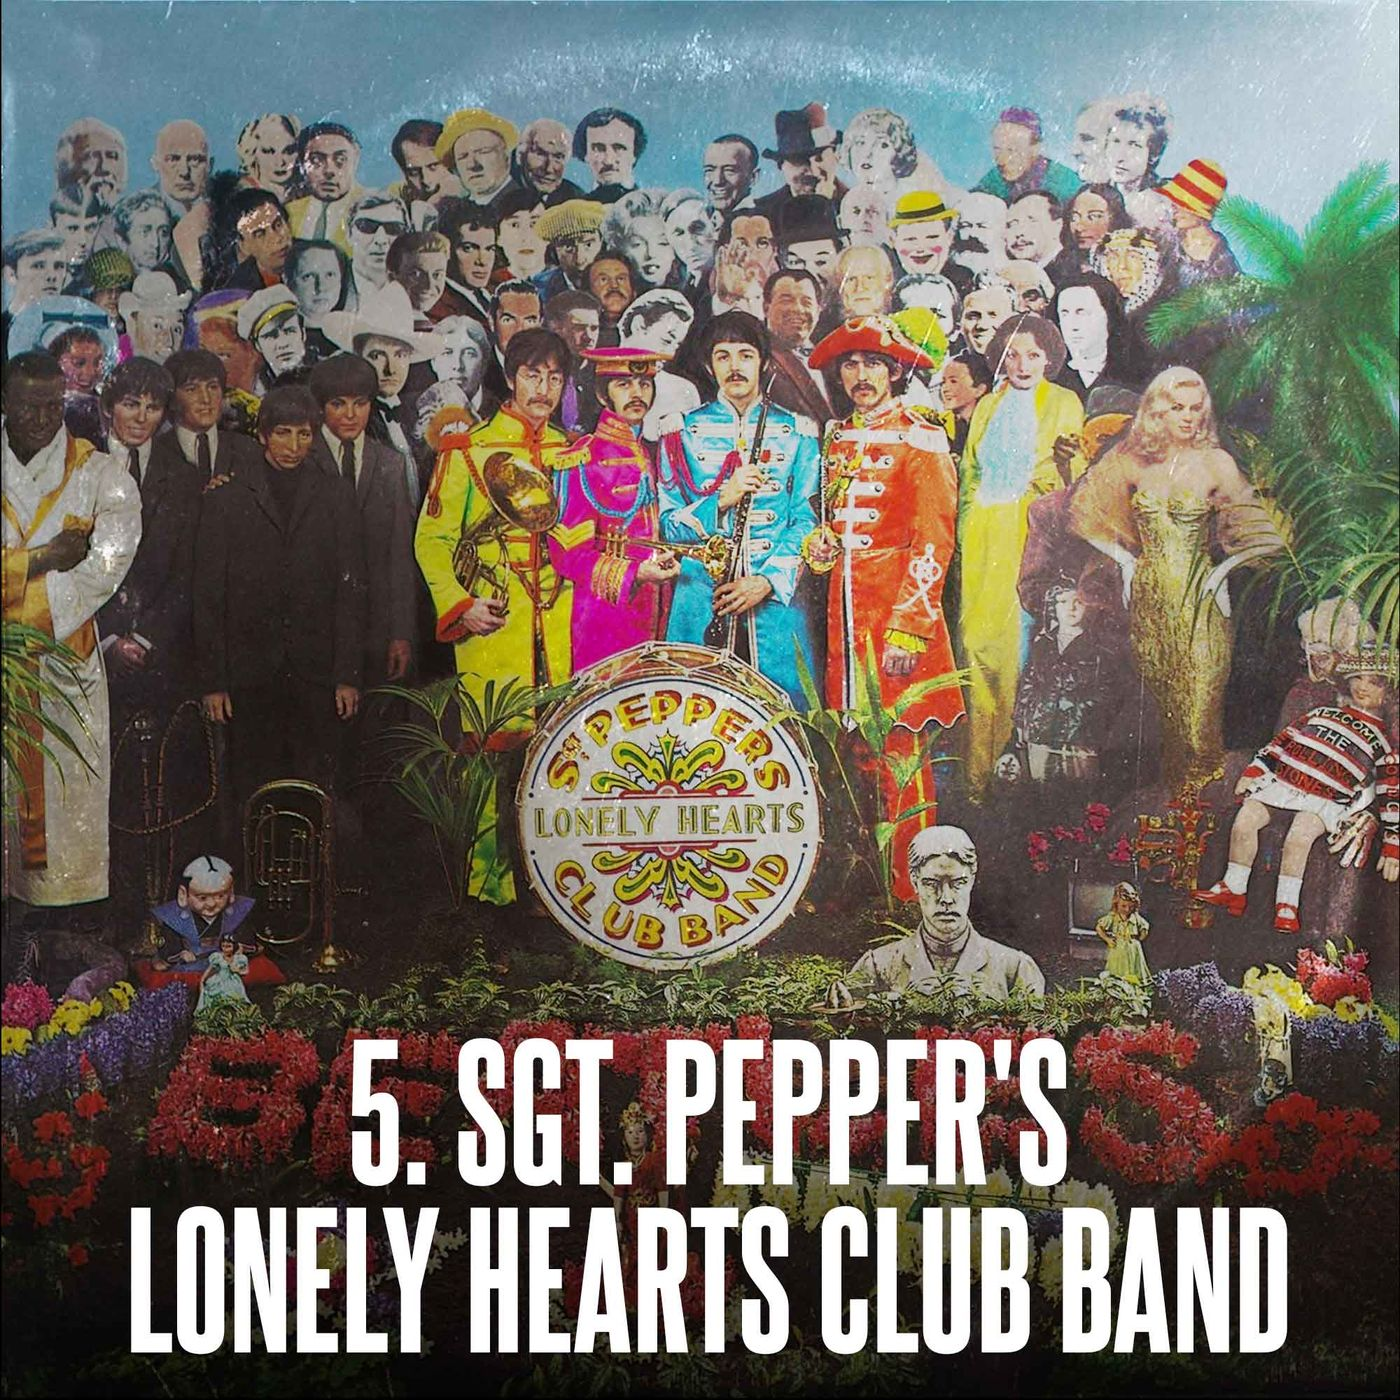 Ep 5 - The Beatles - Sgt. Pepper's Lonely Hearts Club Band